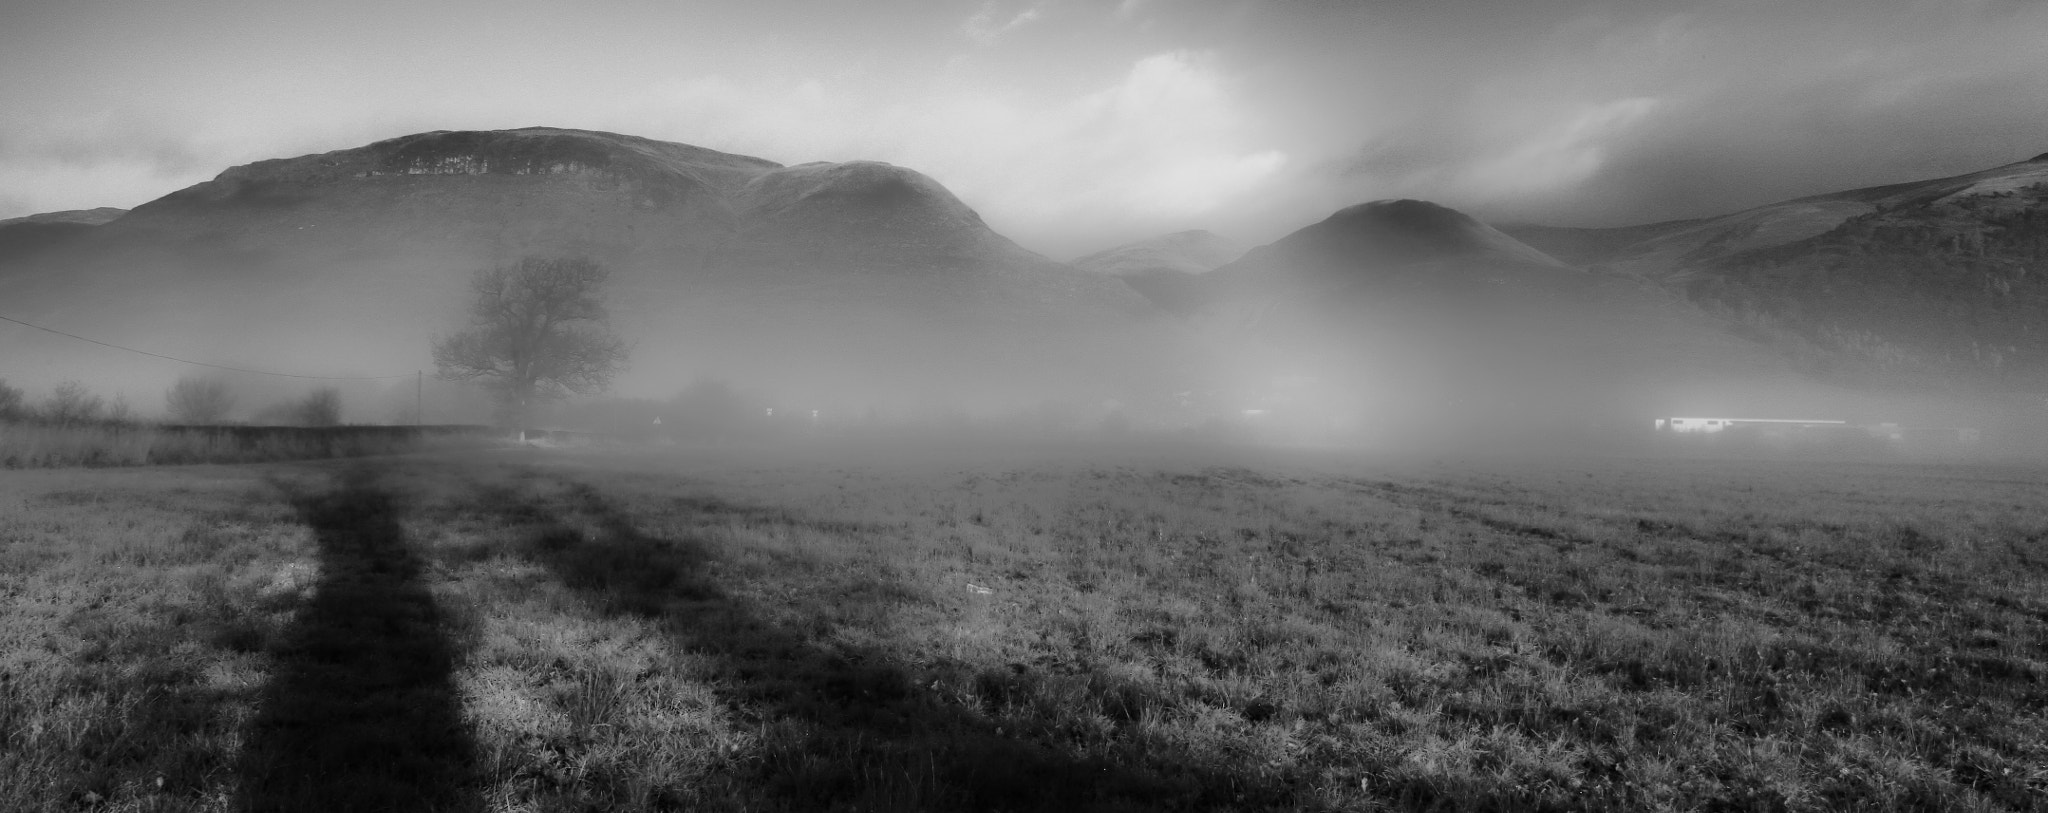 Photograph early morning mist  by ian mcintosh on 500px